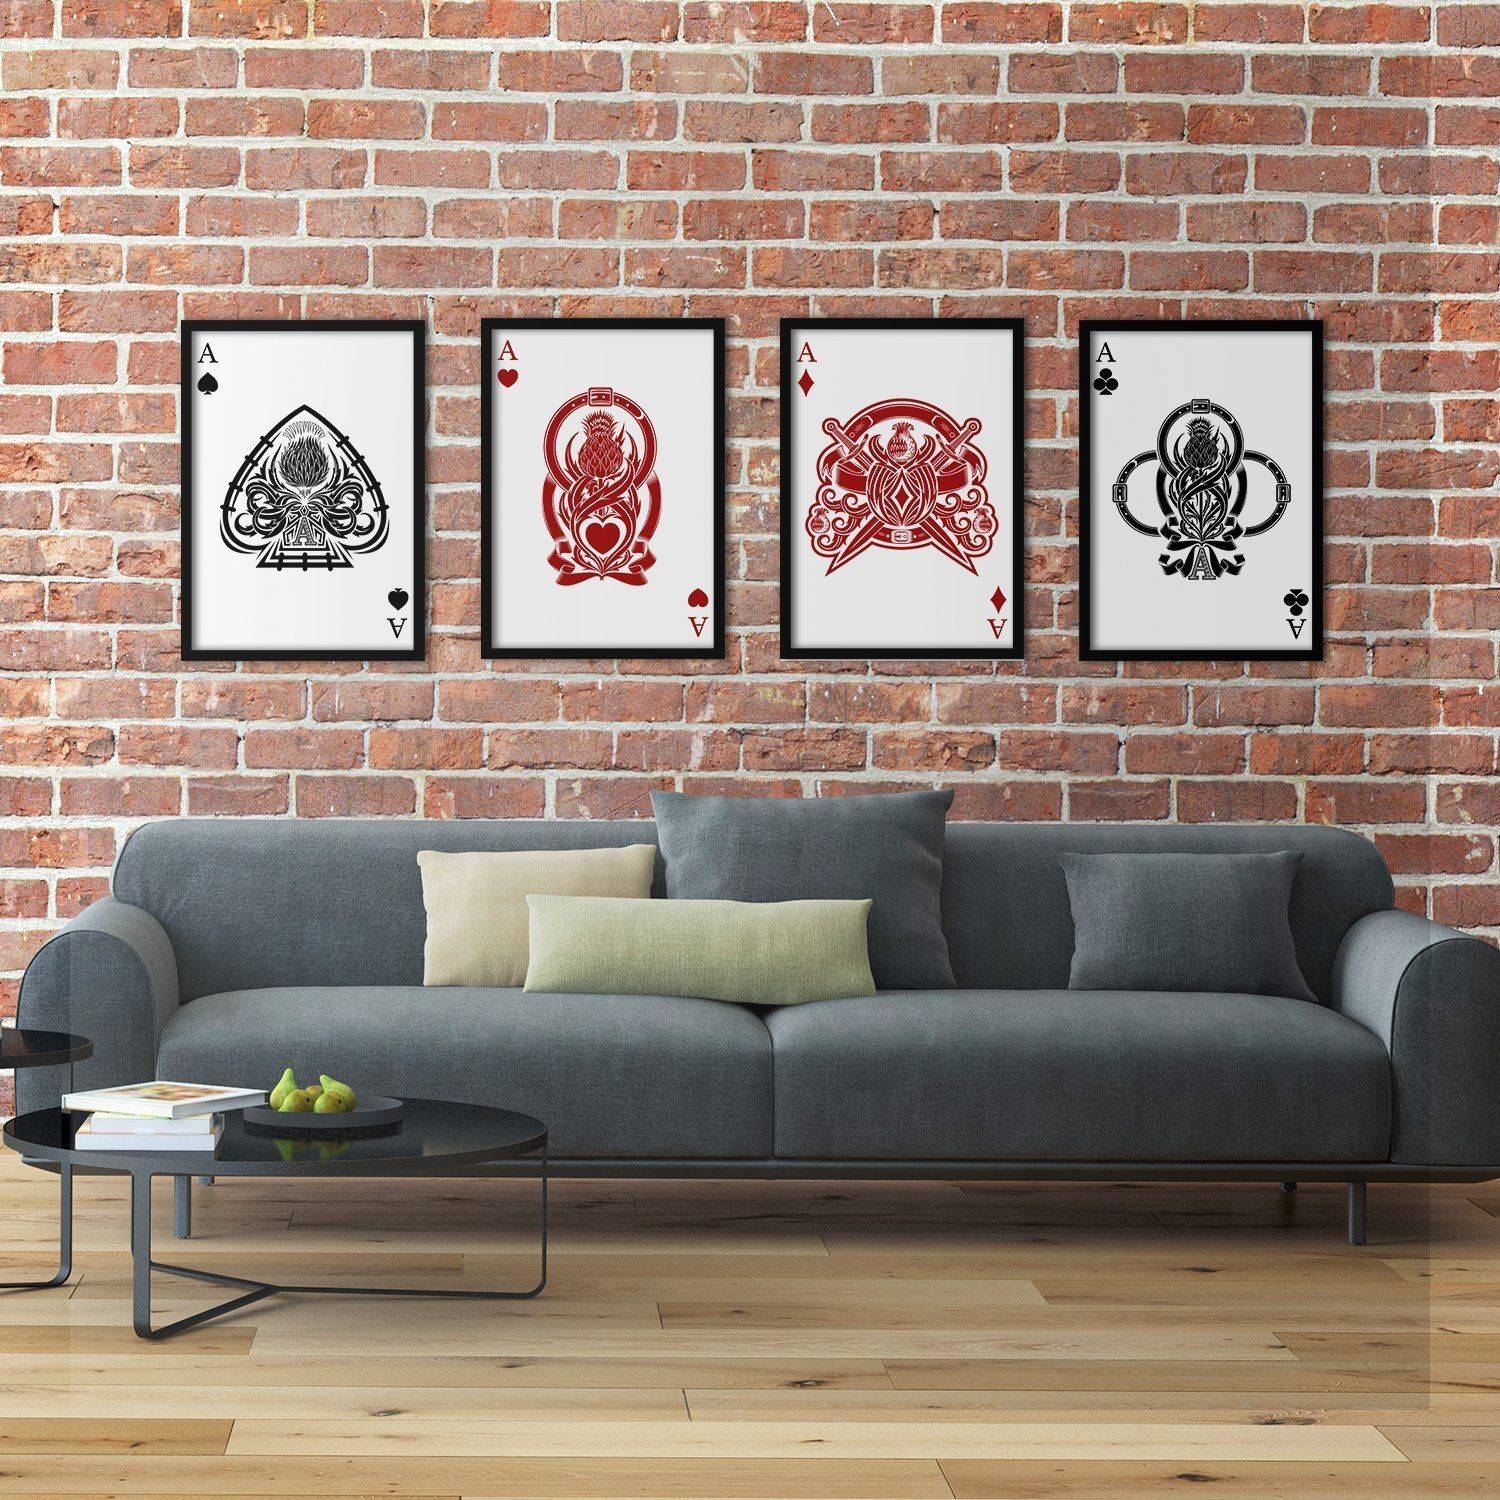 Silver Ares Four of a Kind Aces Poster Set